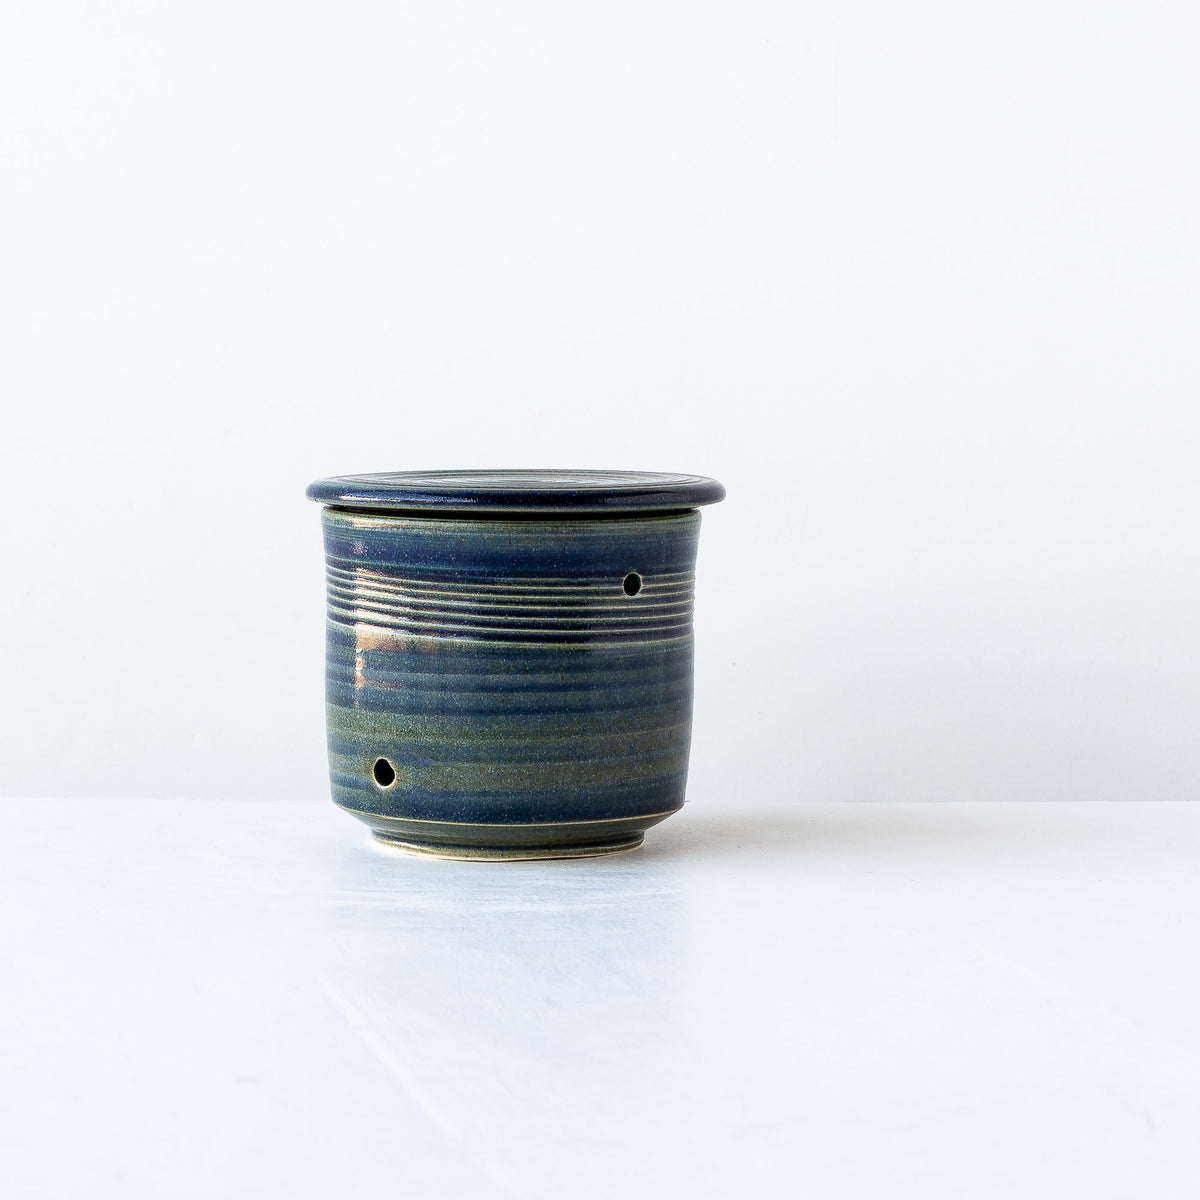 Ceramic Garlic Keeper Handmade in Blue Porcelain - Sold by Chic & Basta